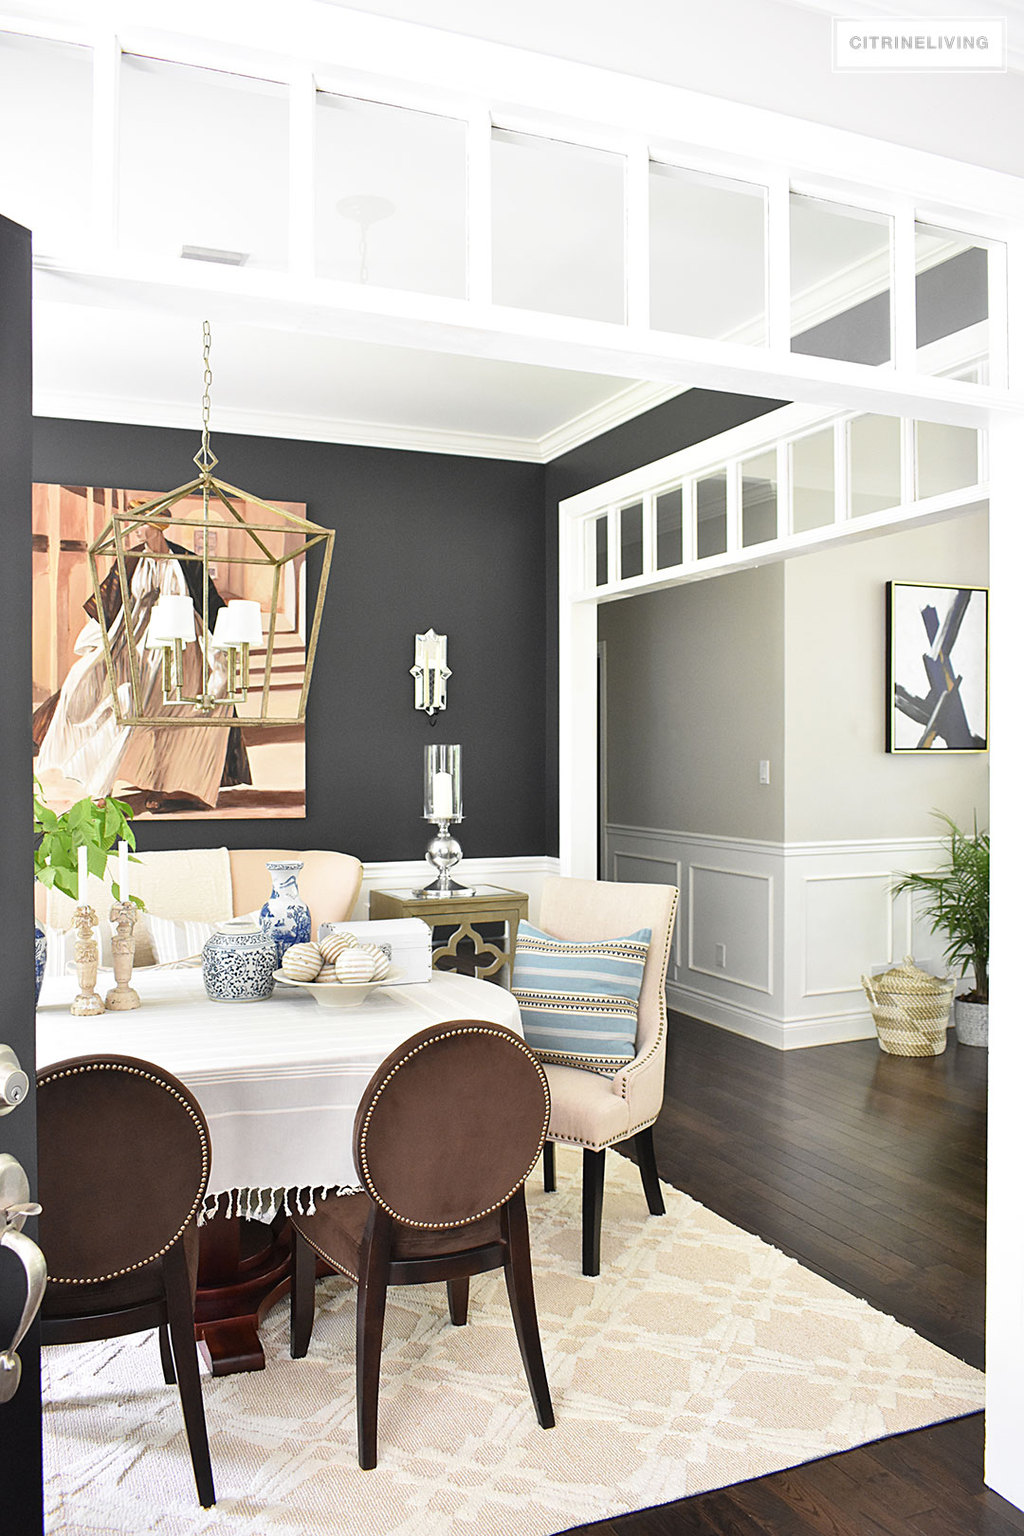 Sophisticated and elegant dining room with transom details. Black walls painted in Cracked pepper by Behr Paint. Neutral decor with layers of blue and white pottery. Upholstered chairs with antique brass nailed trim are elegant and refined. Large scale lantern pendant chandelier makes a bold statement.